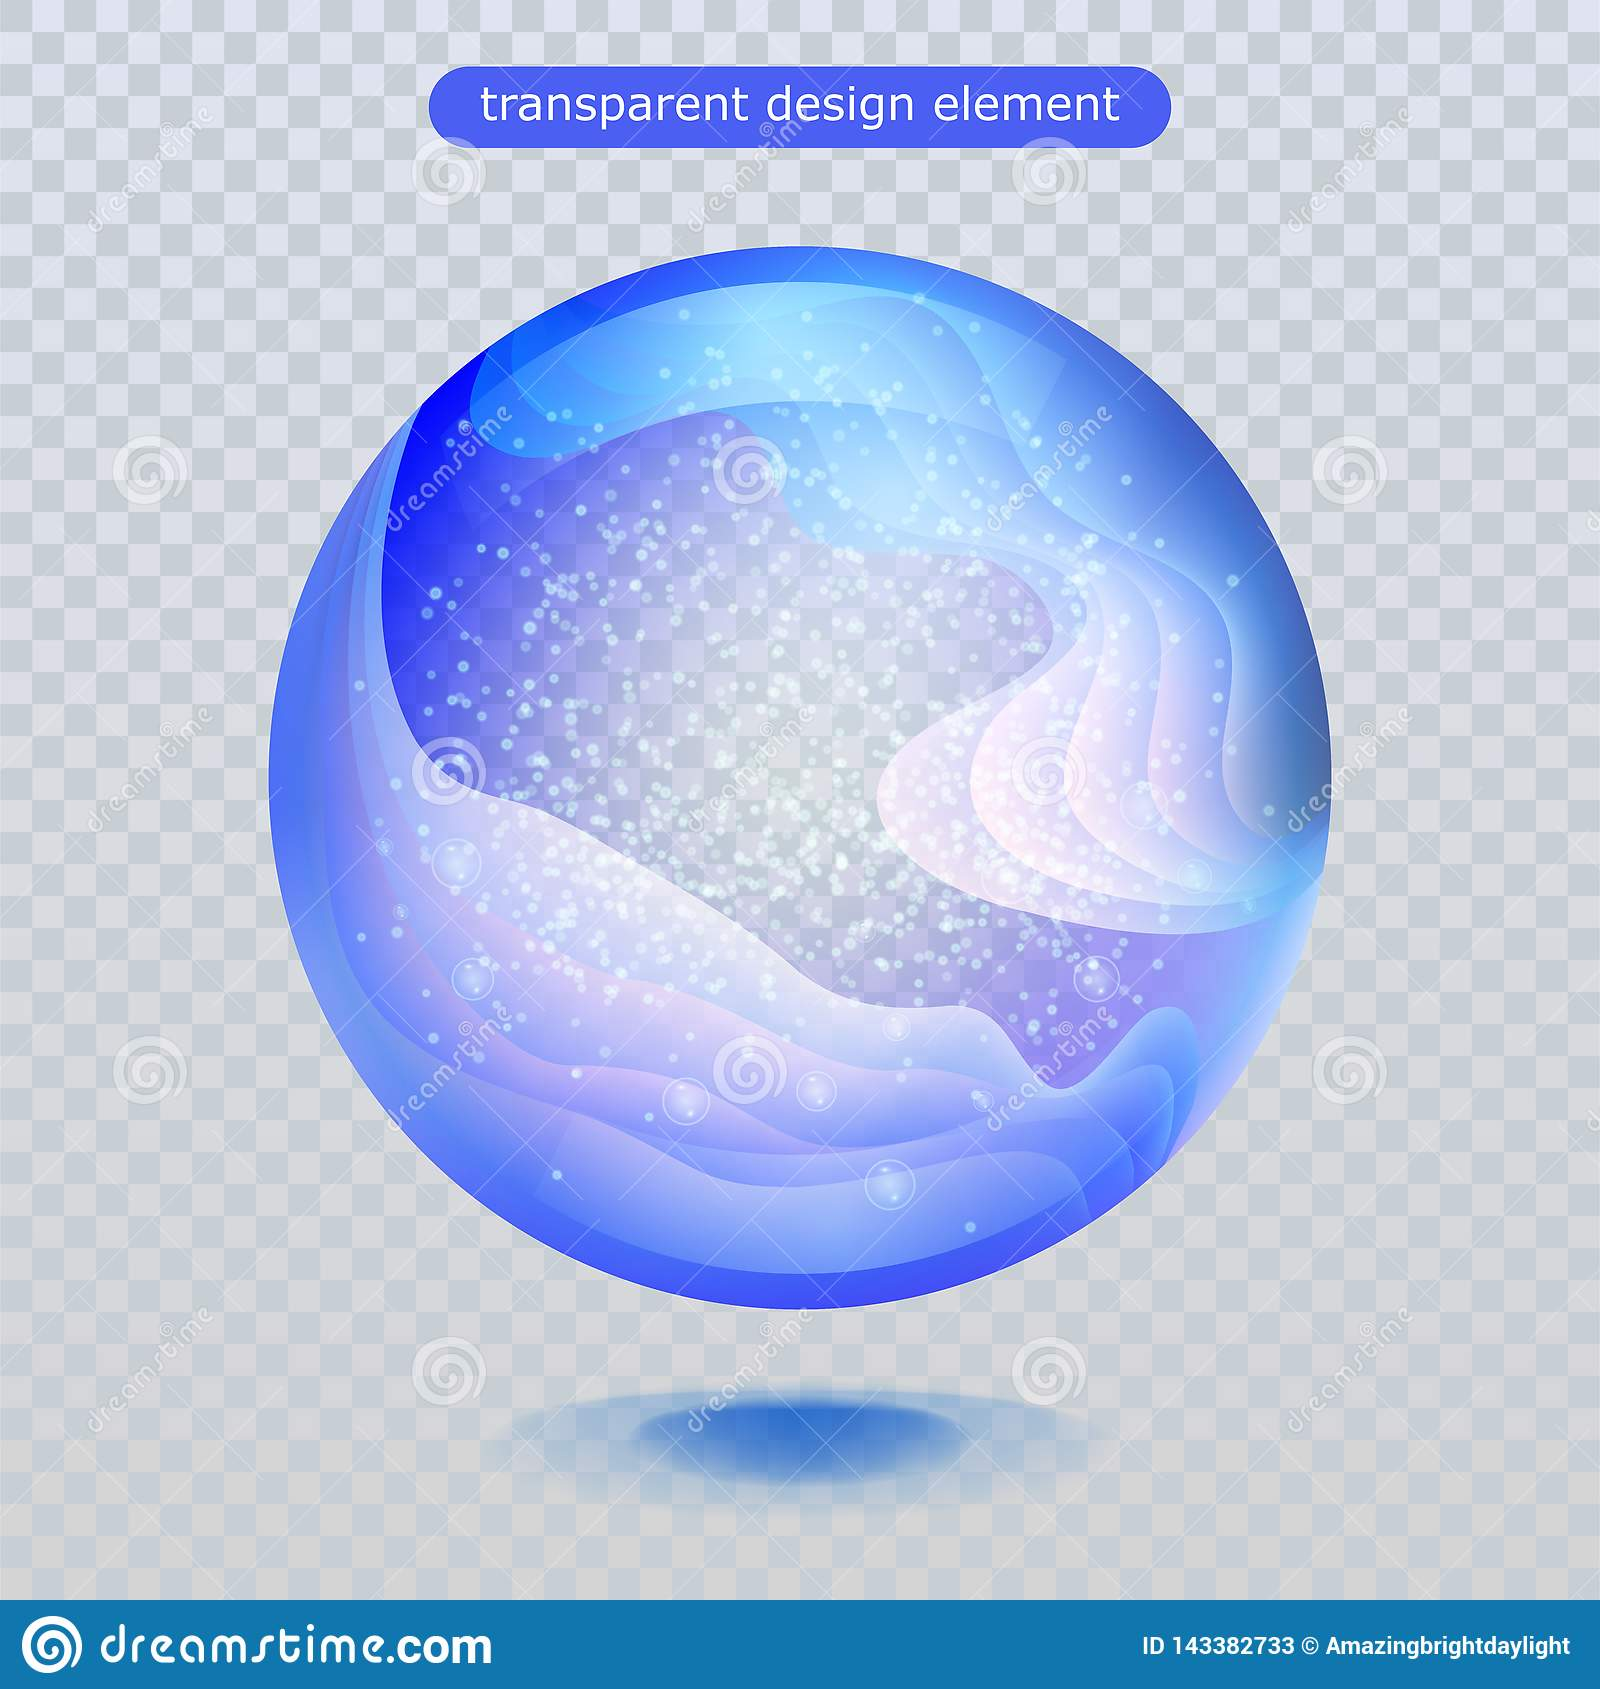 Water rain drop isolated on transparent background. Water bubble or glass surface ball for your design.